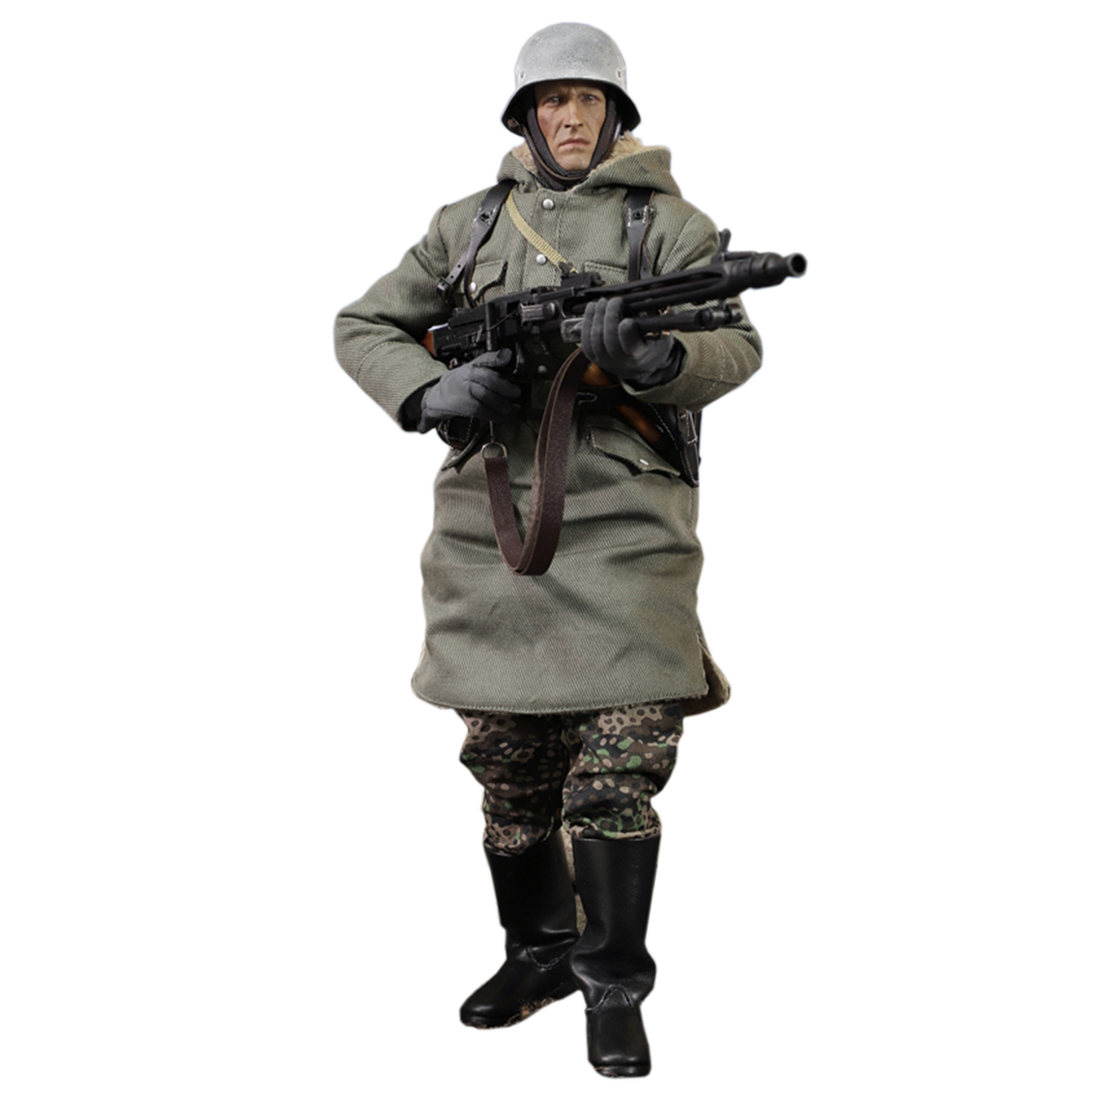 30cm 1/6 Movable Military Soldier Model Realistic Headsculpt Handmade Figure Model High Degree of Reduction DID German Dustin30cm 1/6 Movable Military Soldier Model Realistic Headsculpt Handmade Figure Model High Degree of Reduction DID German Dustin